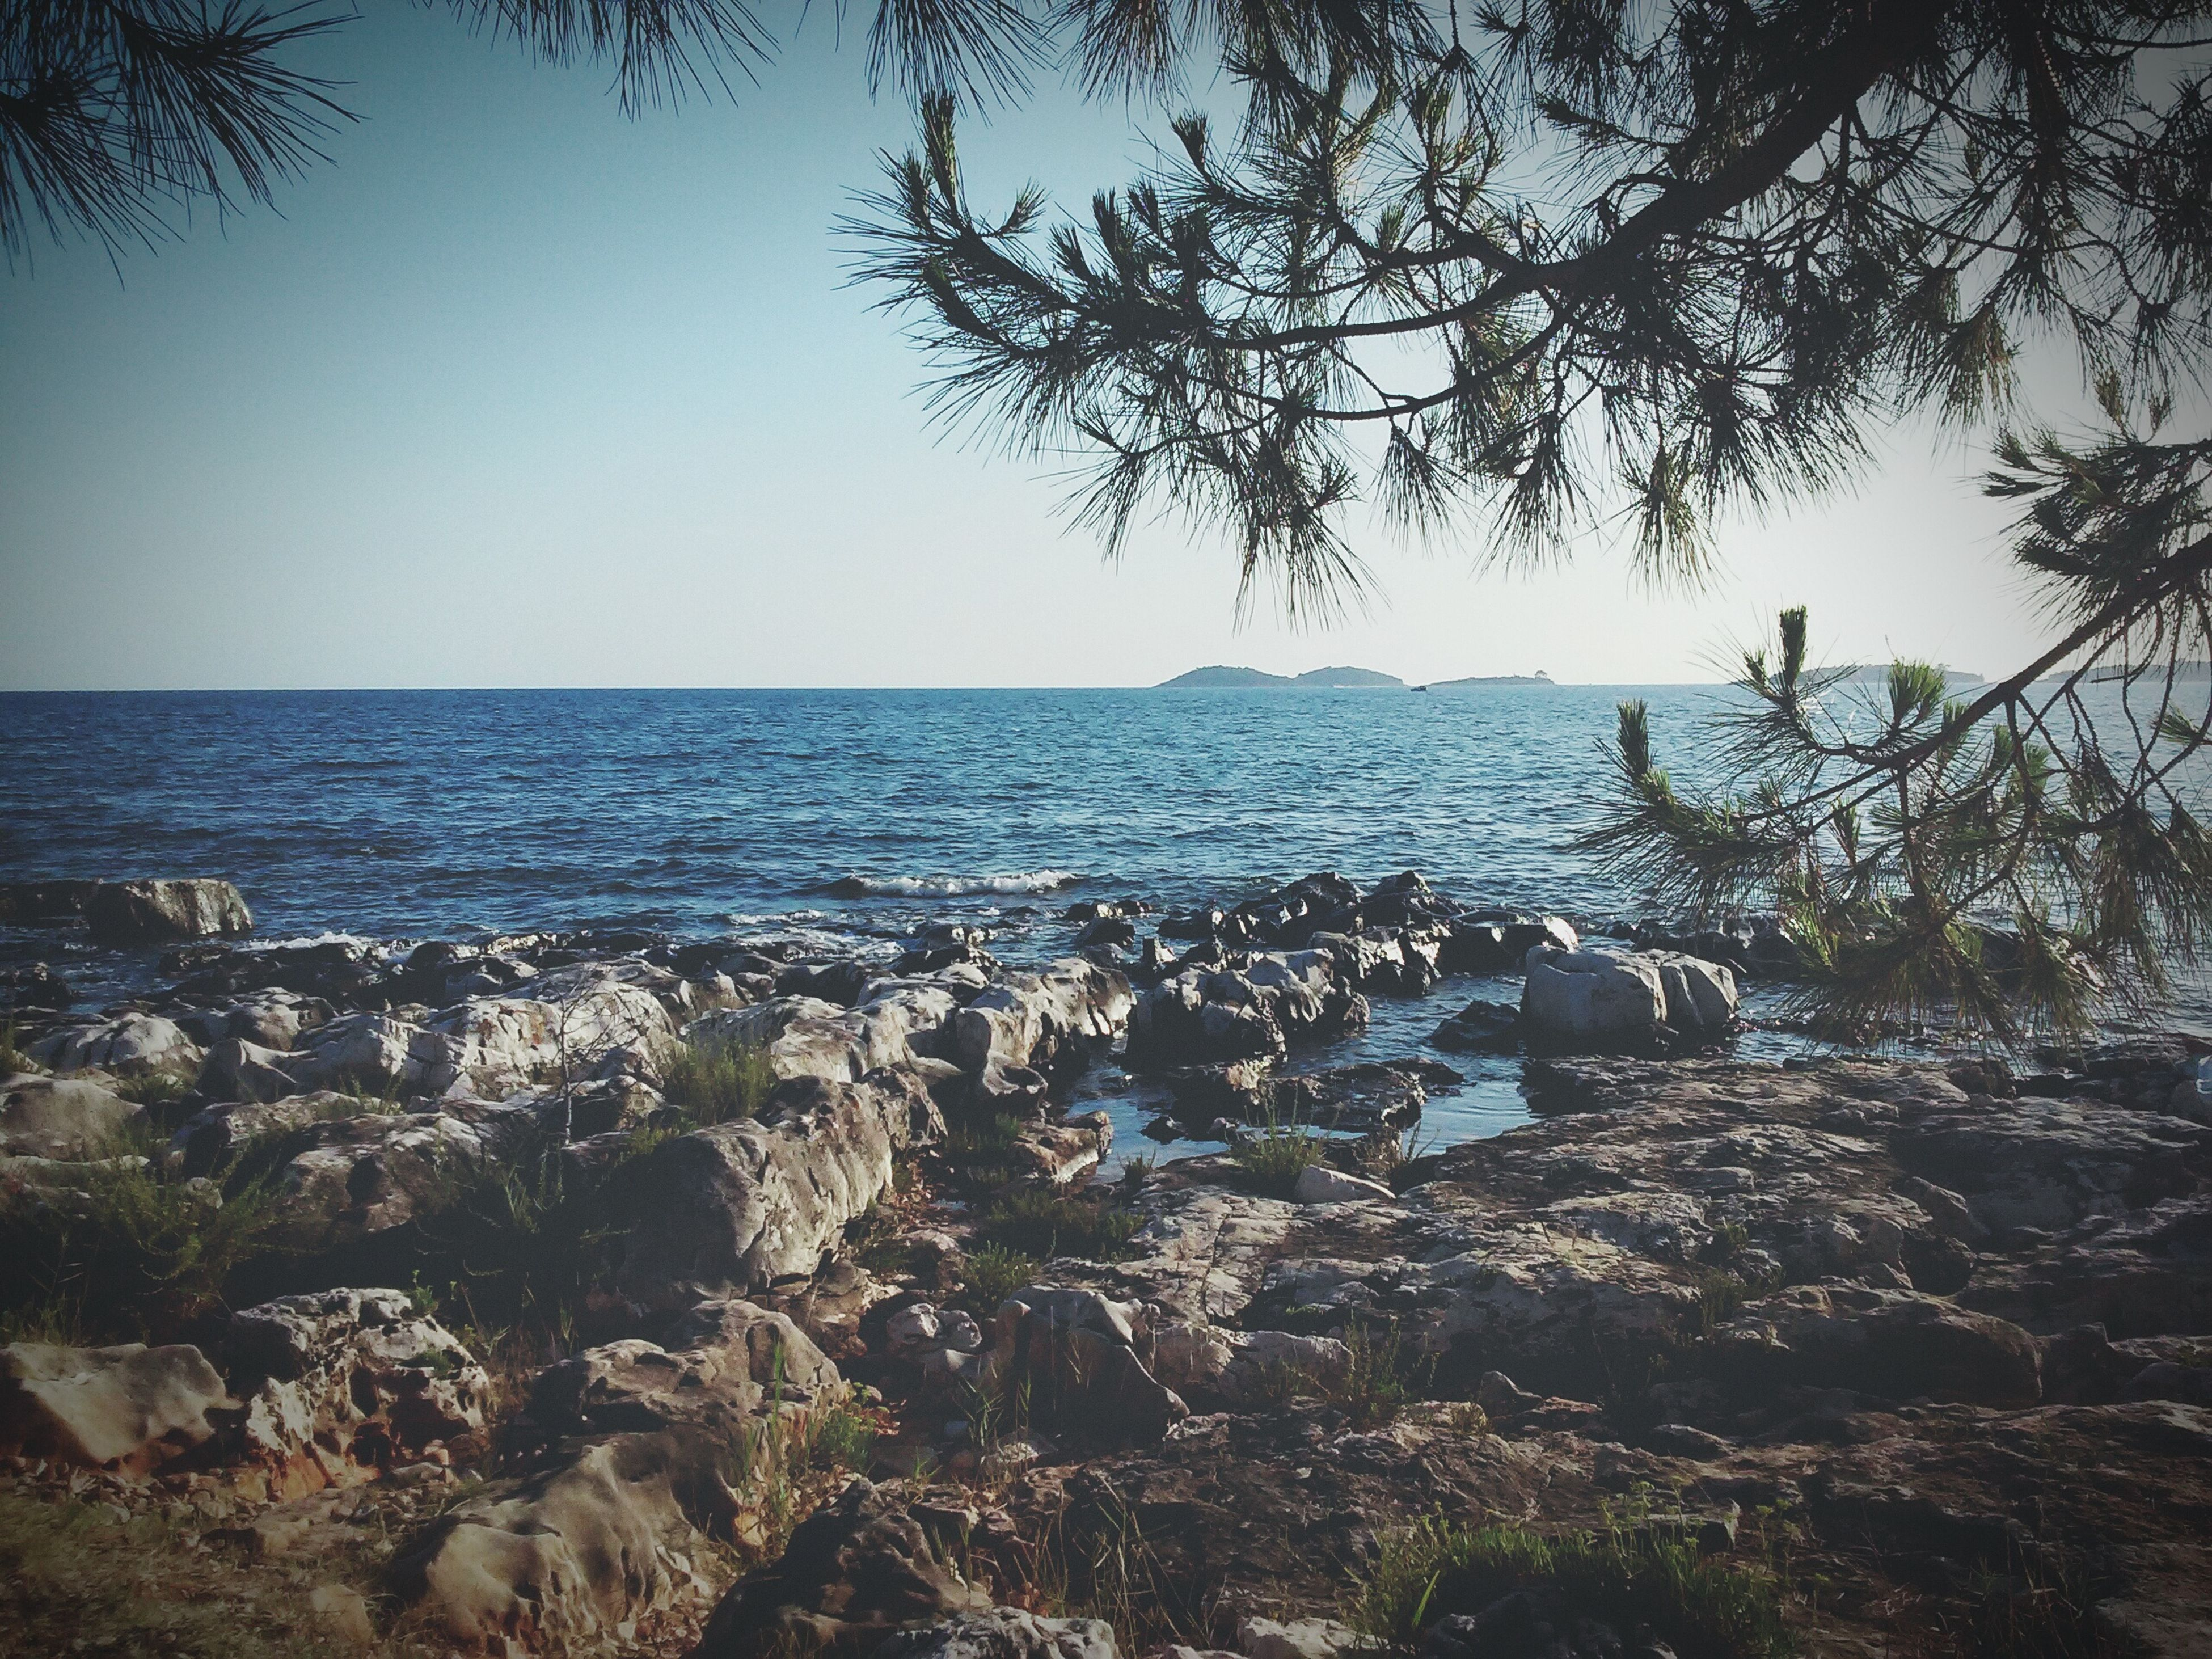 sea, horizon over water, clear sky, tranquility, tranquil scene, water, scenics, beauty in nature, tree, nature, beach, branch, copy space, shore, idyllic, growth, sky, sunlight, blue, day